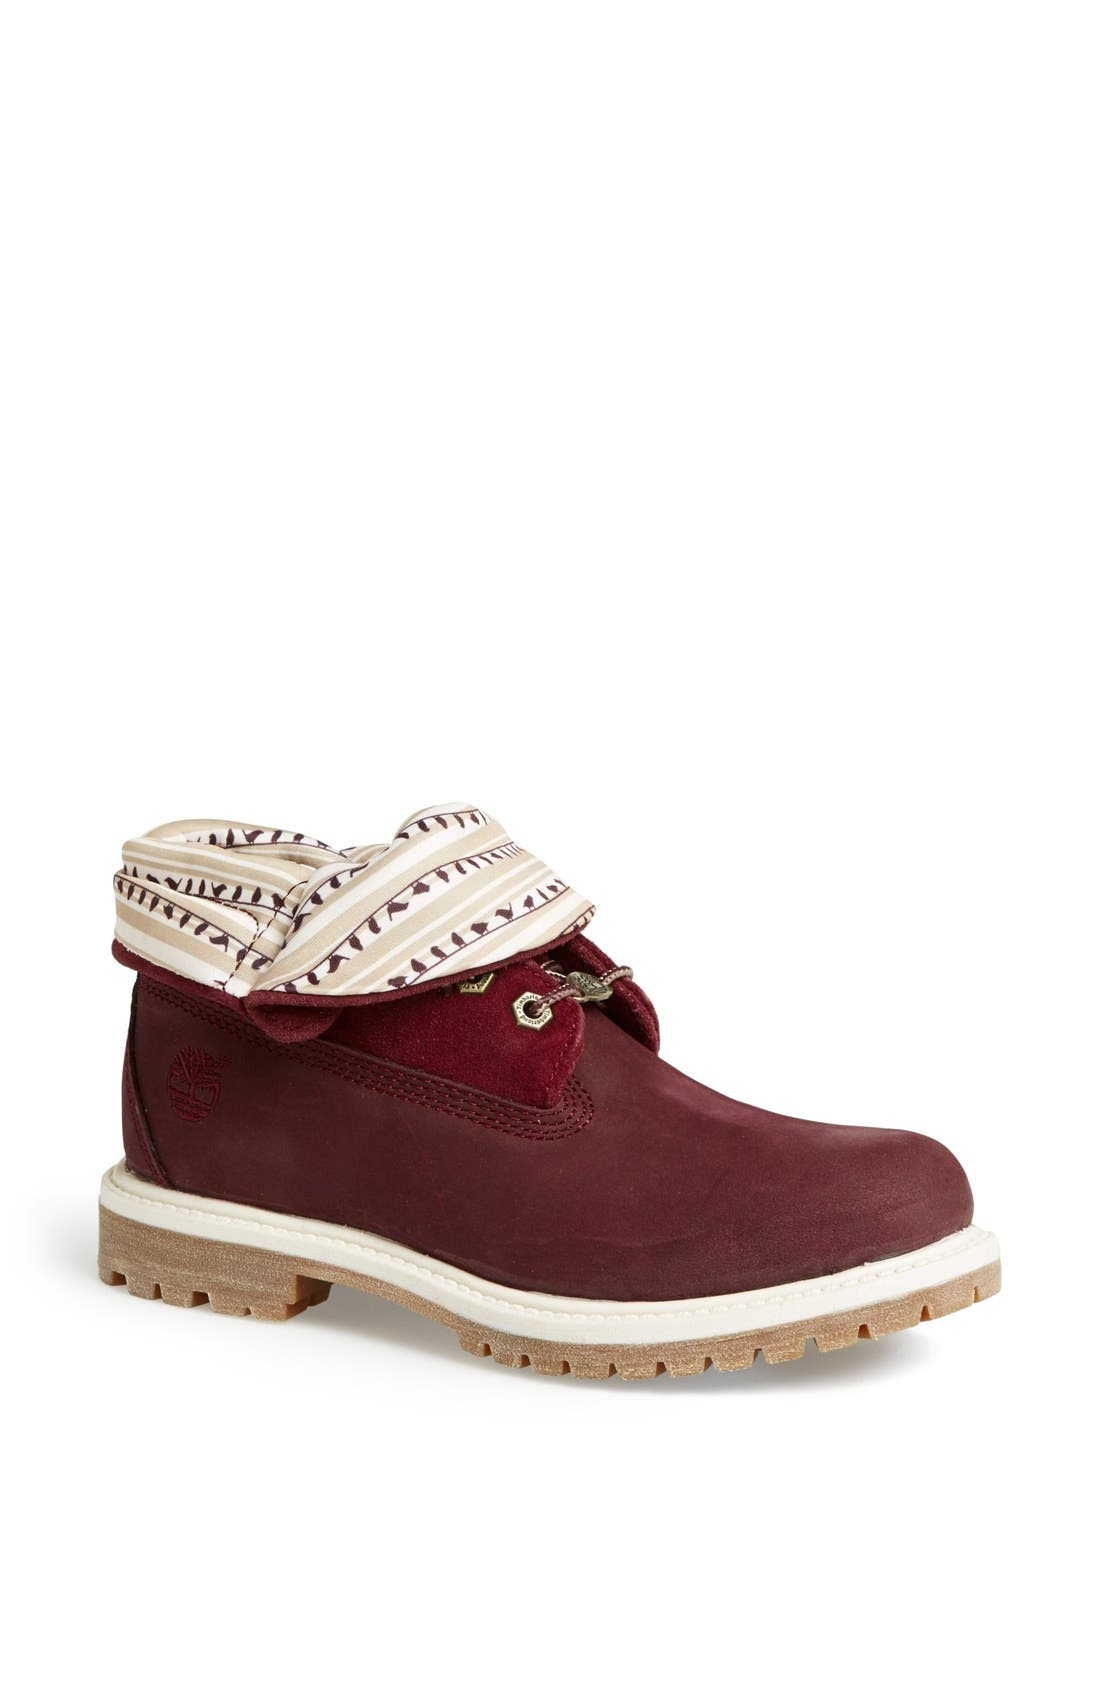 Main Image - Timberland 'Authentic' Roll Top Boot